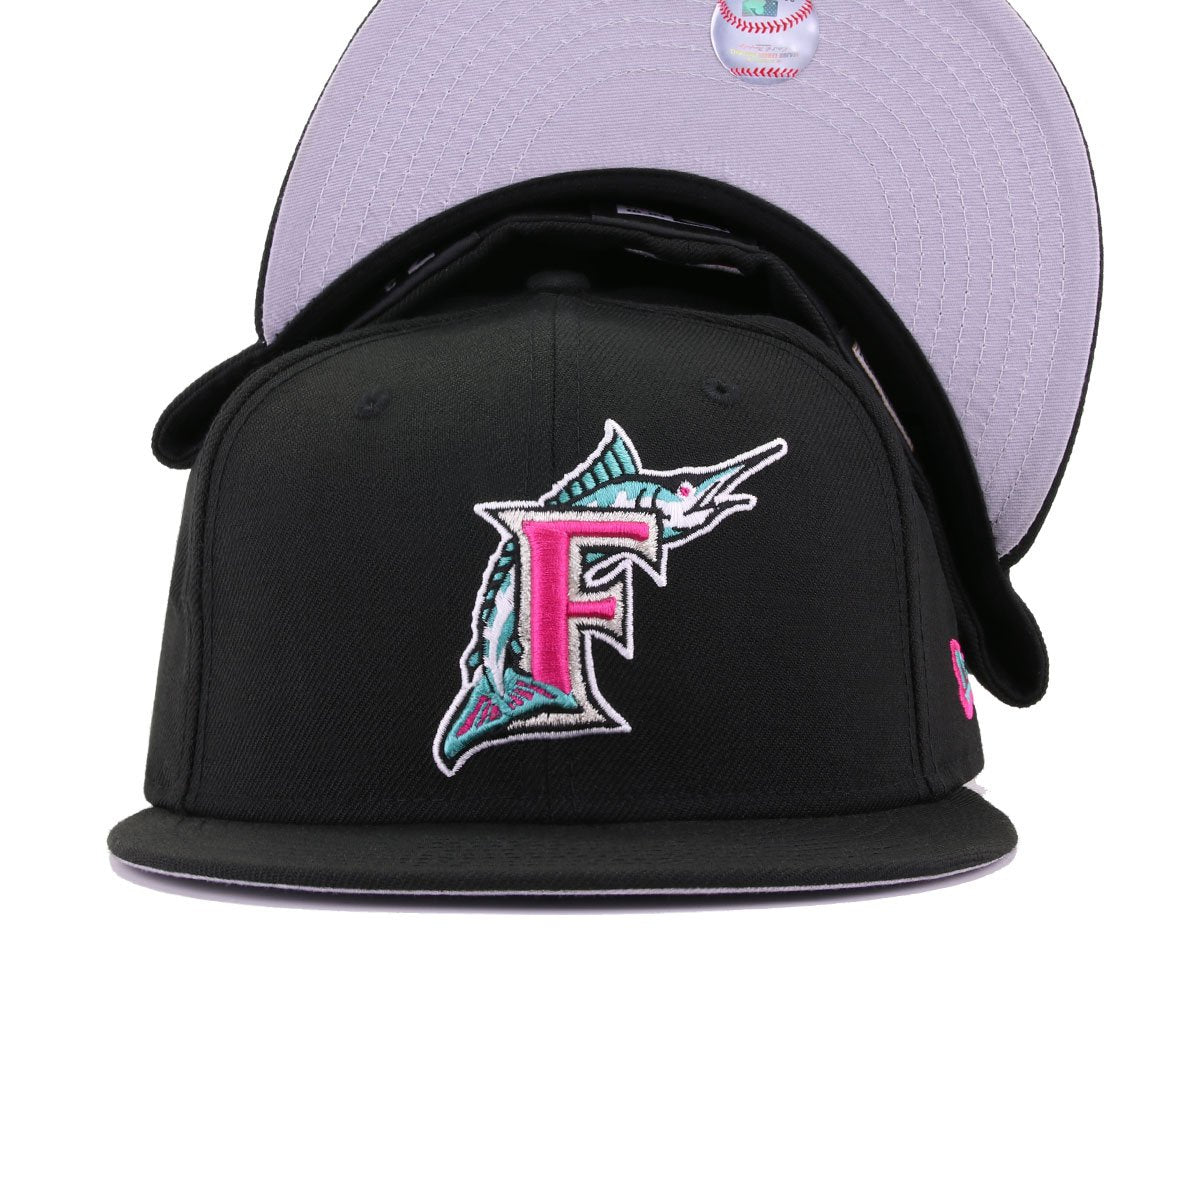 Florida Marlins Black Aqua Beet Root Purple New Era 59Fifty Fitted